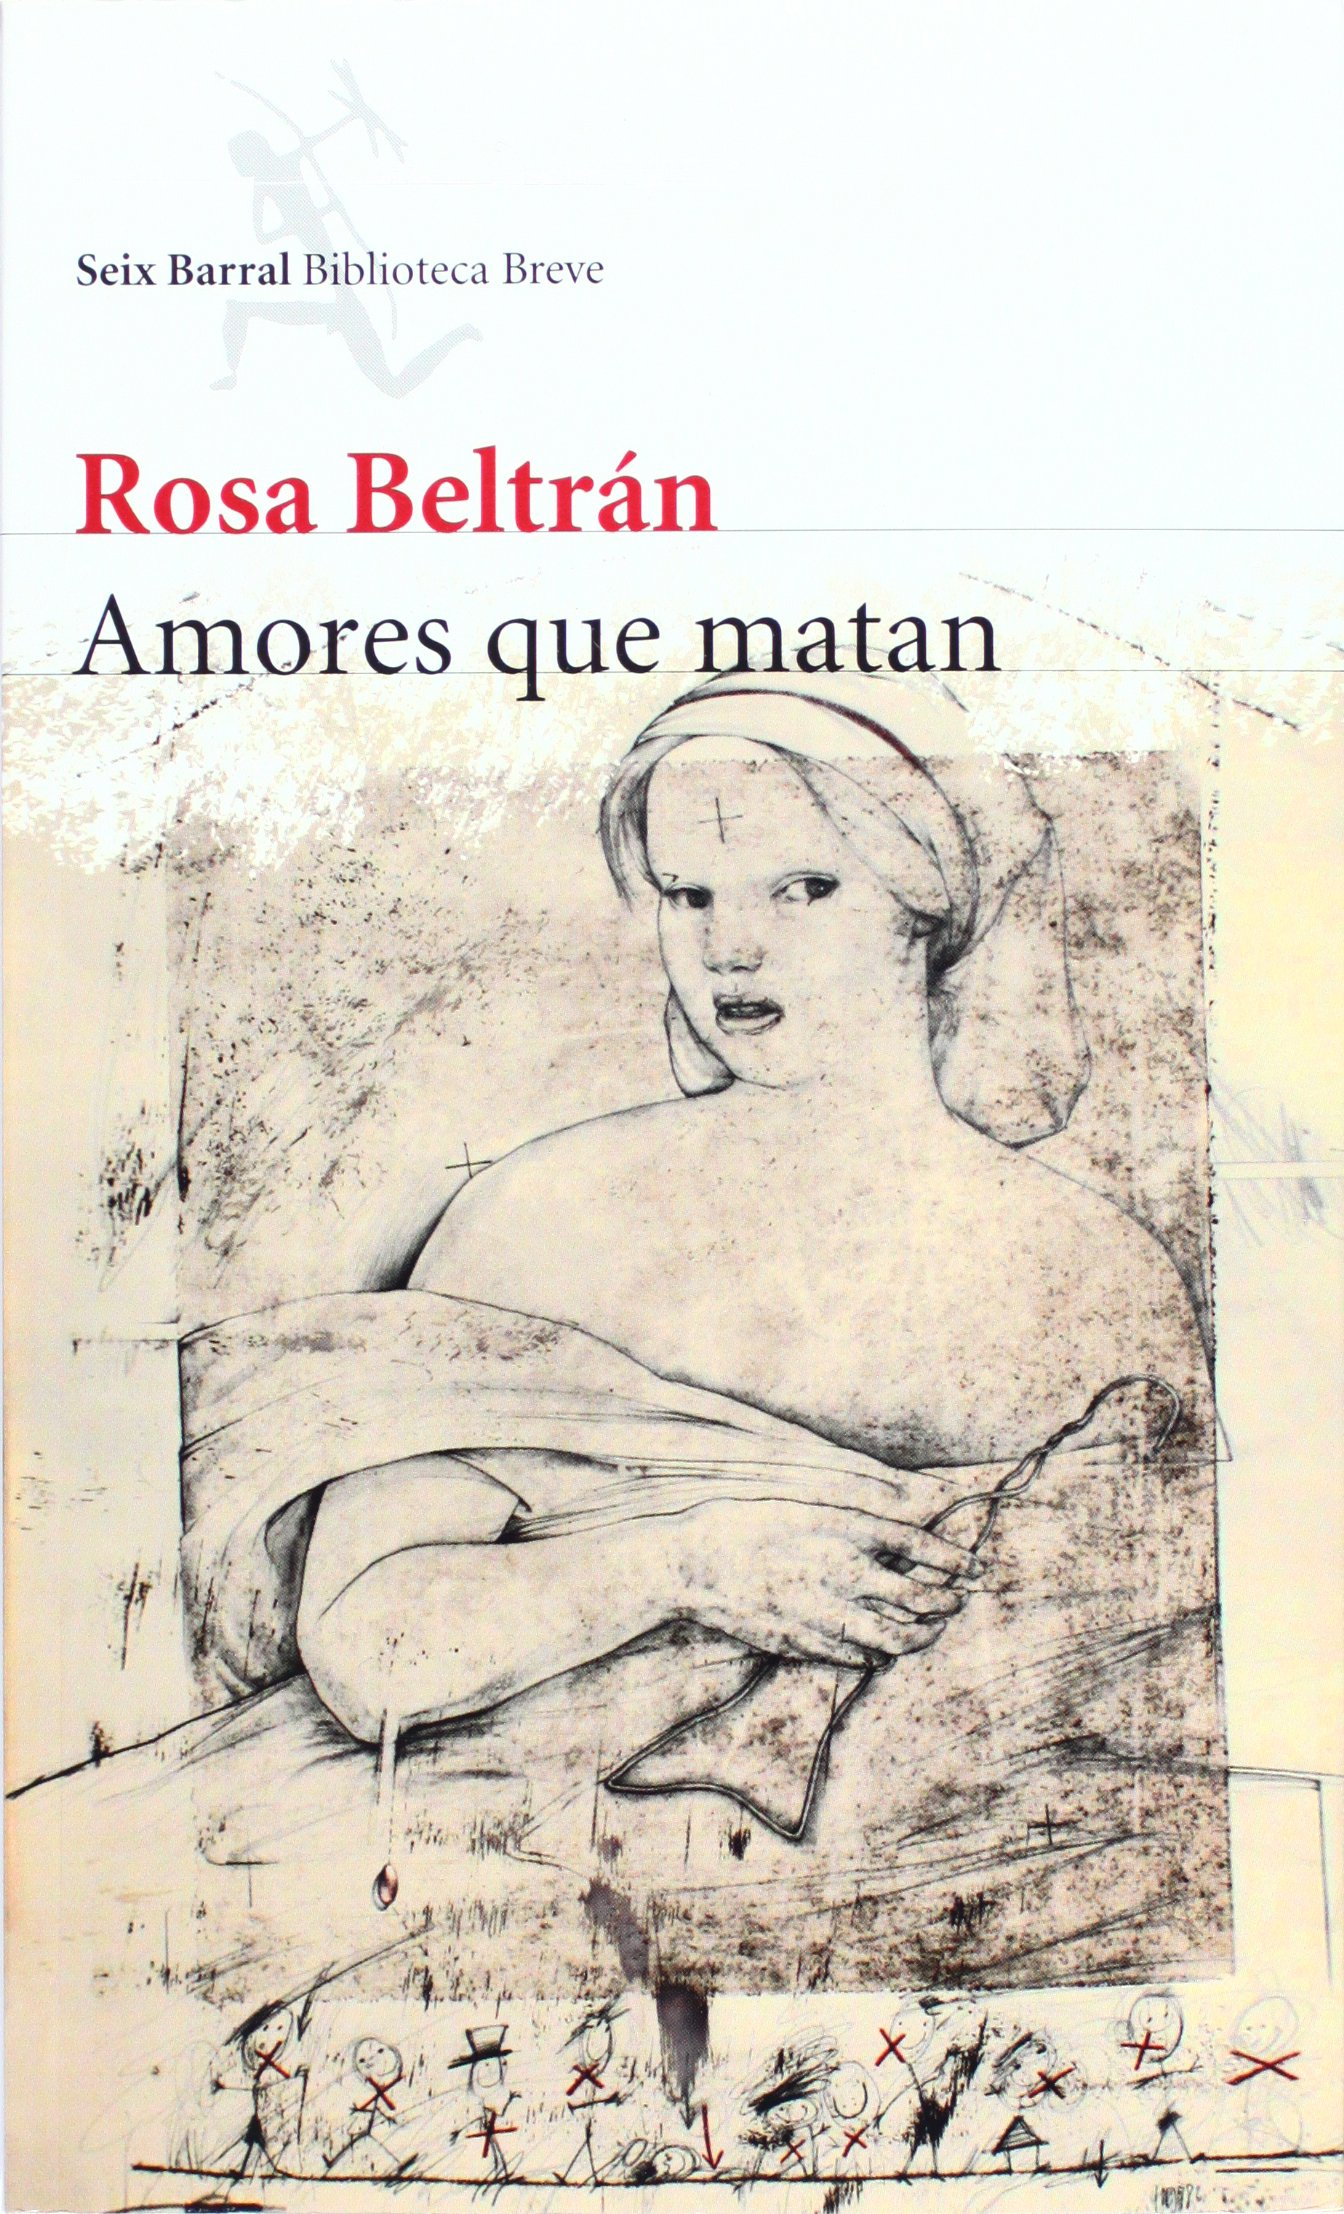 Amores que matan (Spanish Edition): Rosa Beltran: 9789703707300: Amazon.com: Books